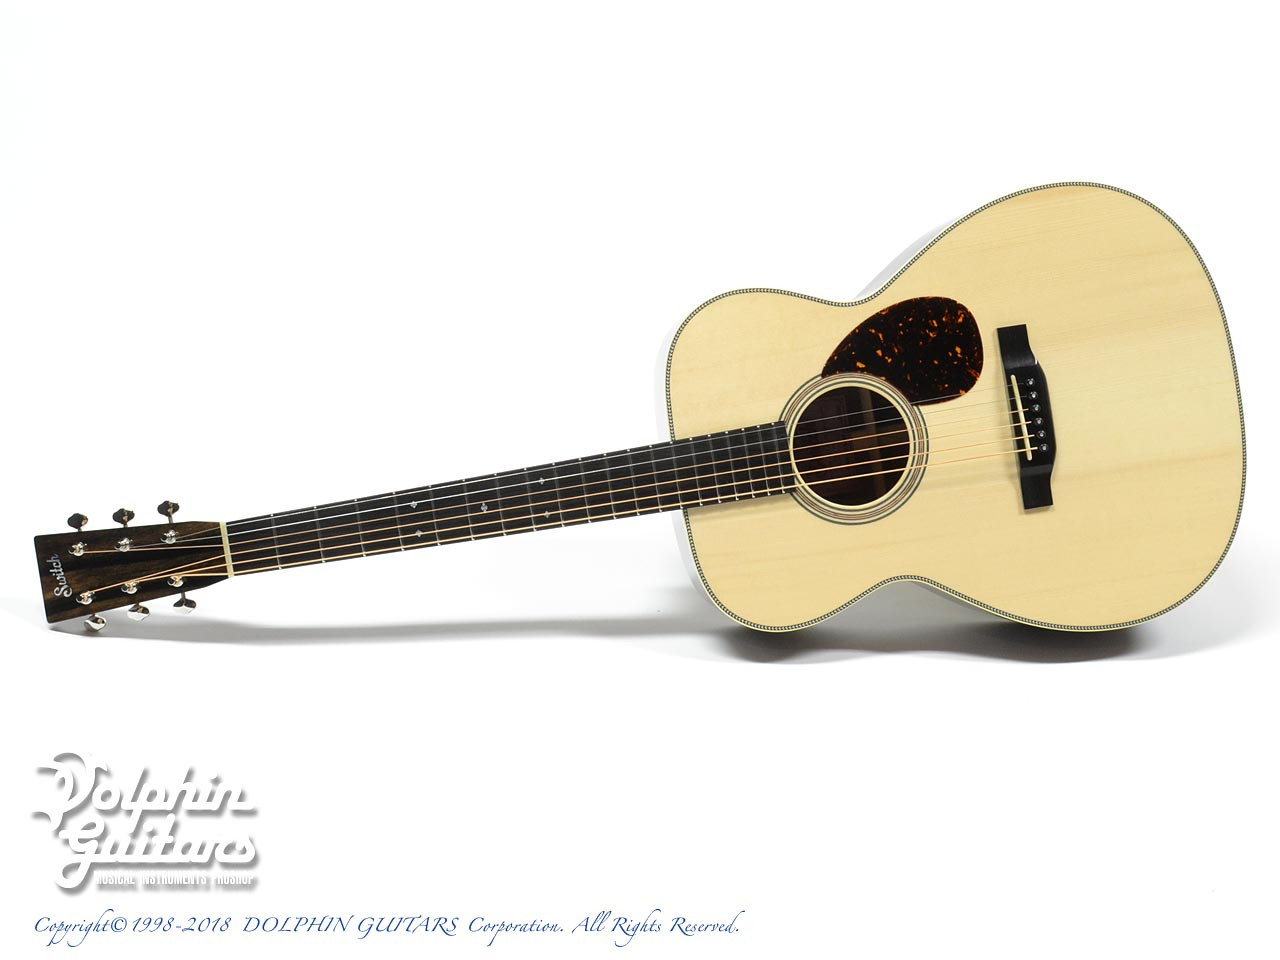 SWITCH: SCOM-2H A-MR (Adirondack Spruce & Madagascar Rosewood) (0)